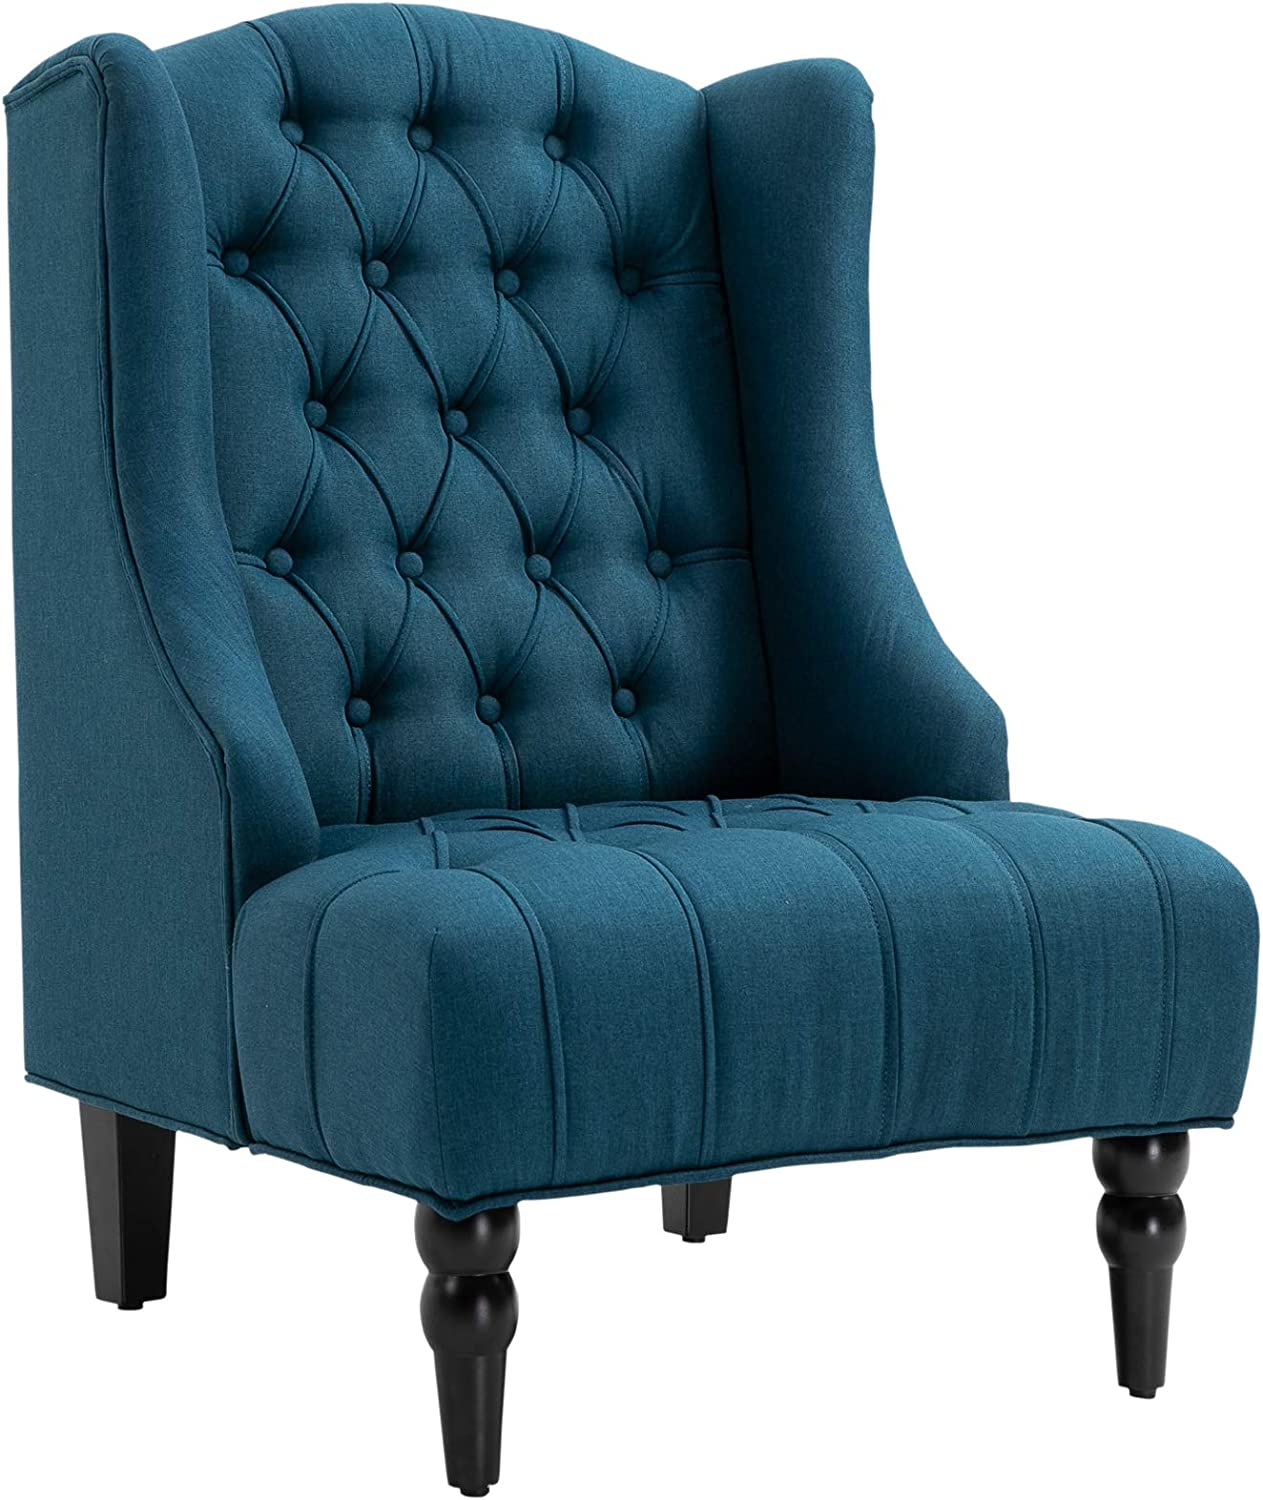 HOMCOM Linen Fabric Button Tufted Tall Wingback Accent Chair with Wooden Legs - Dark Blue